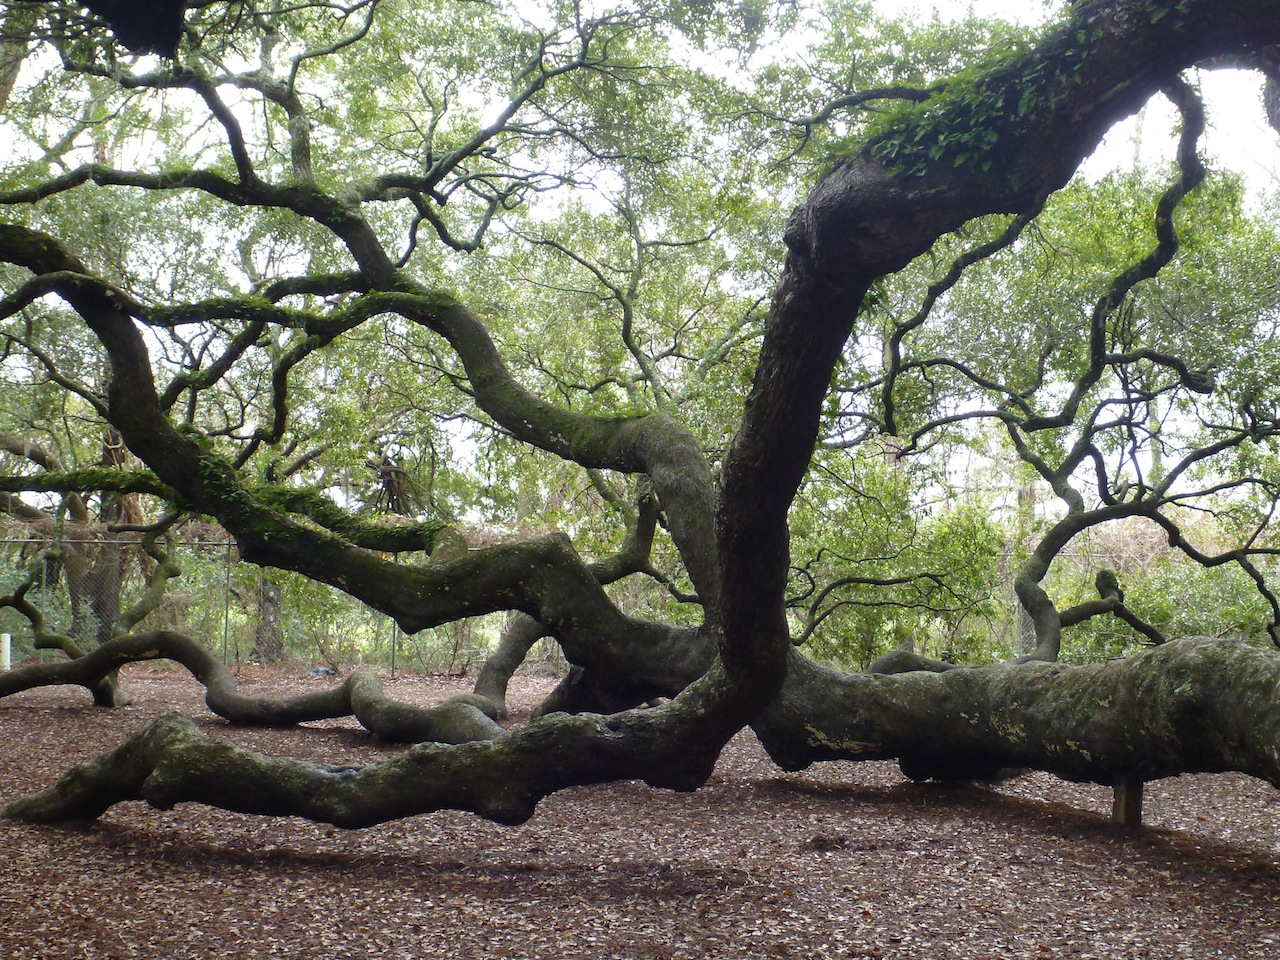 The Angel oak Tree's Heavy Branches Rest On The Ground